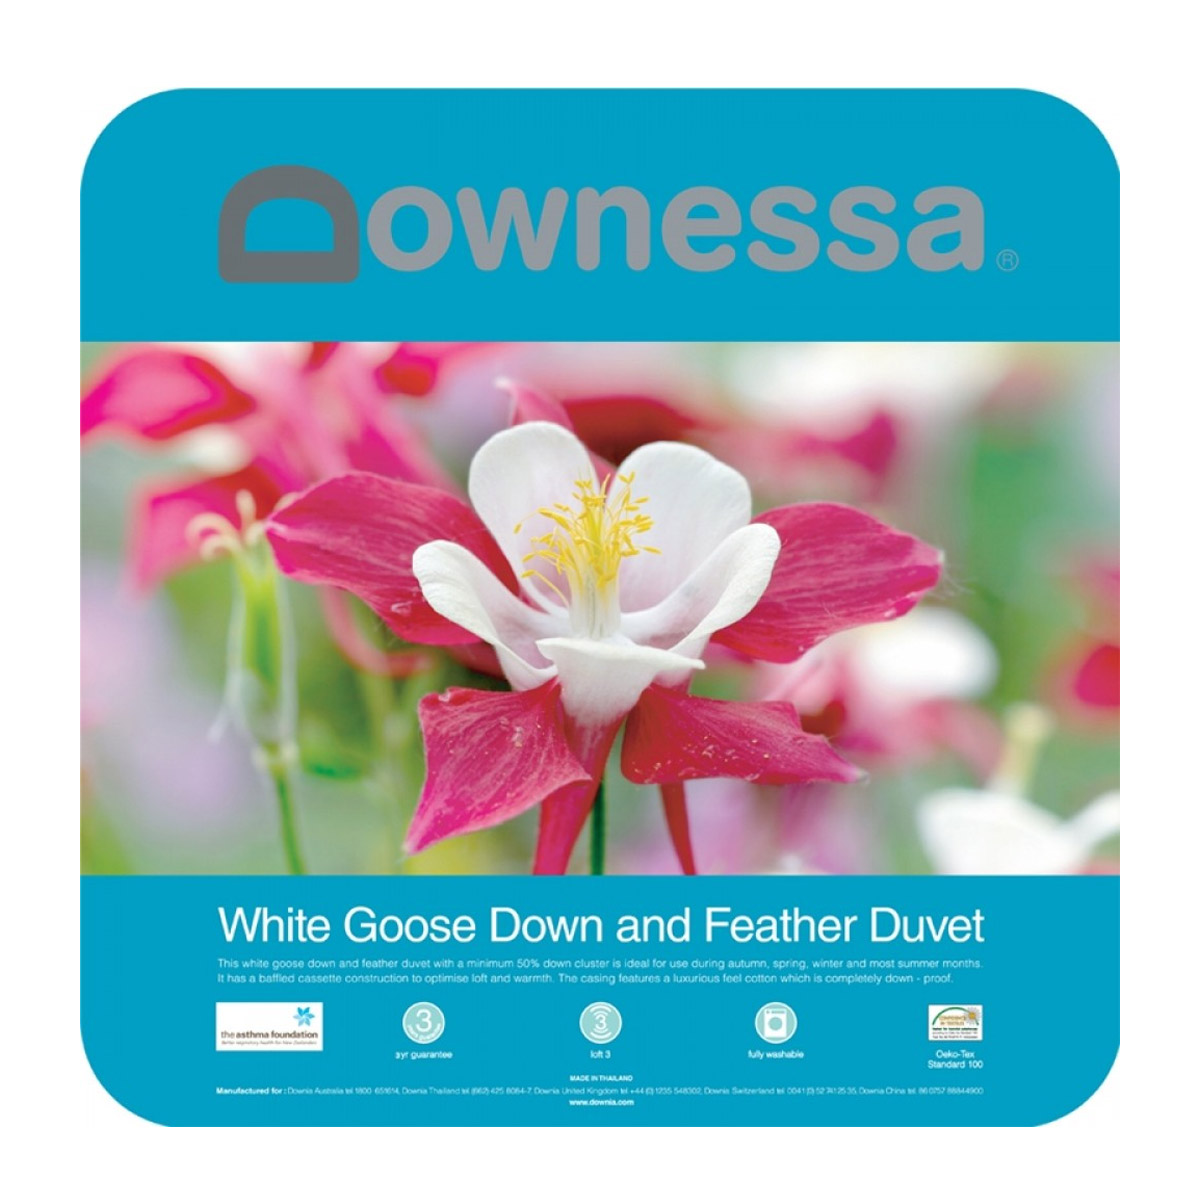 Downessa White Goose Down and Feather Quilt Duvet